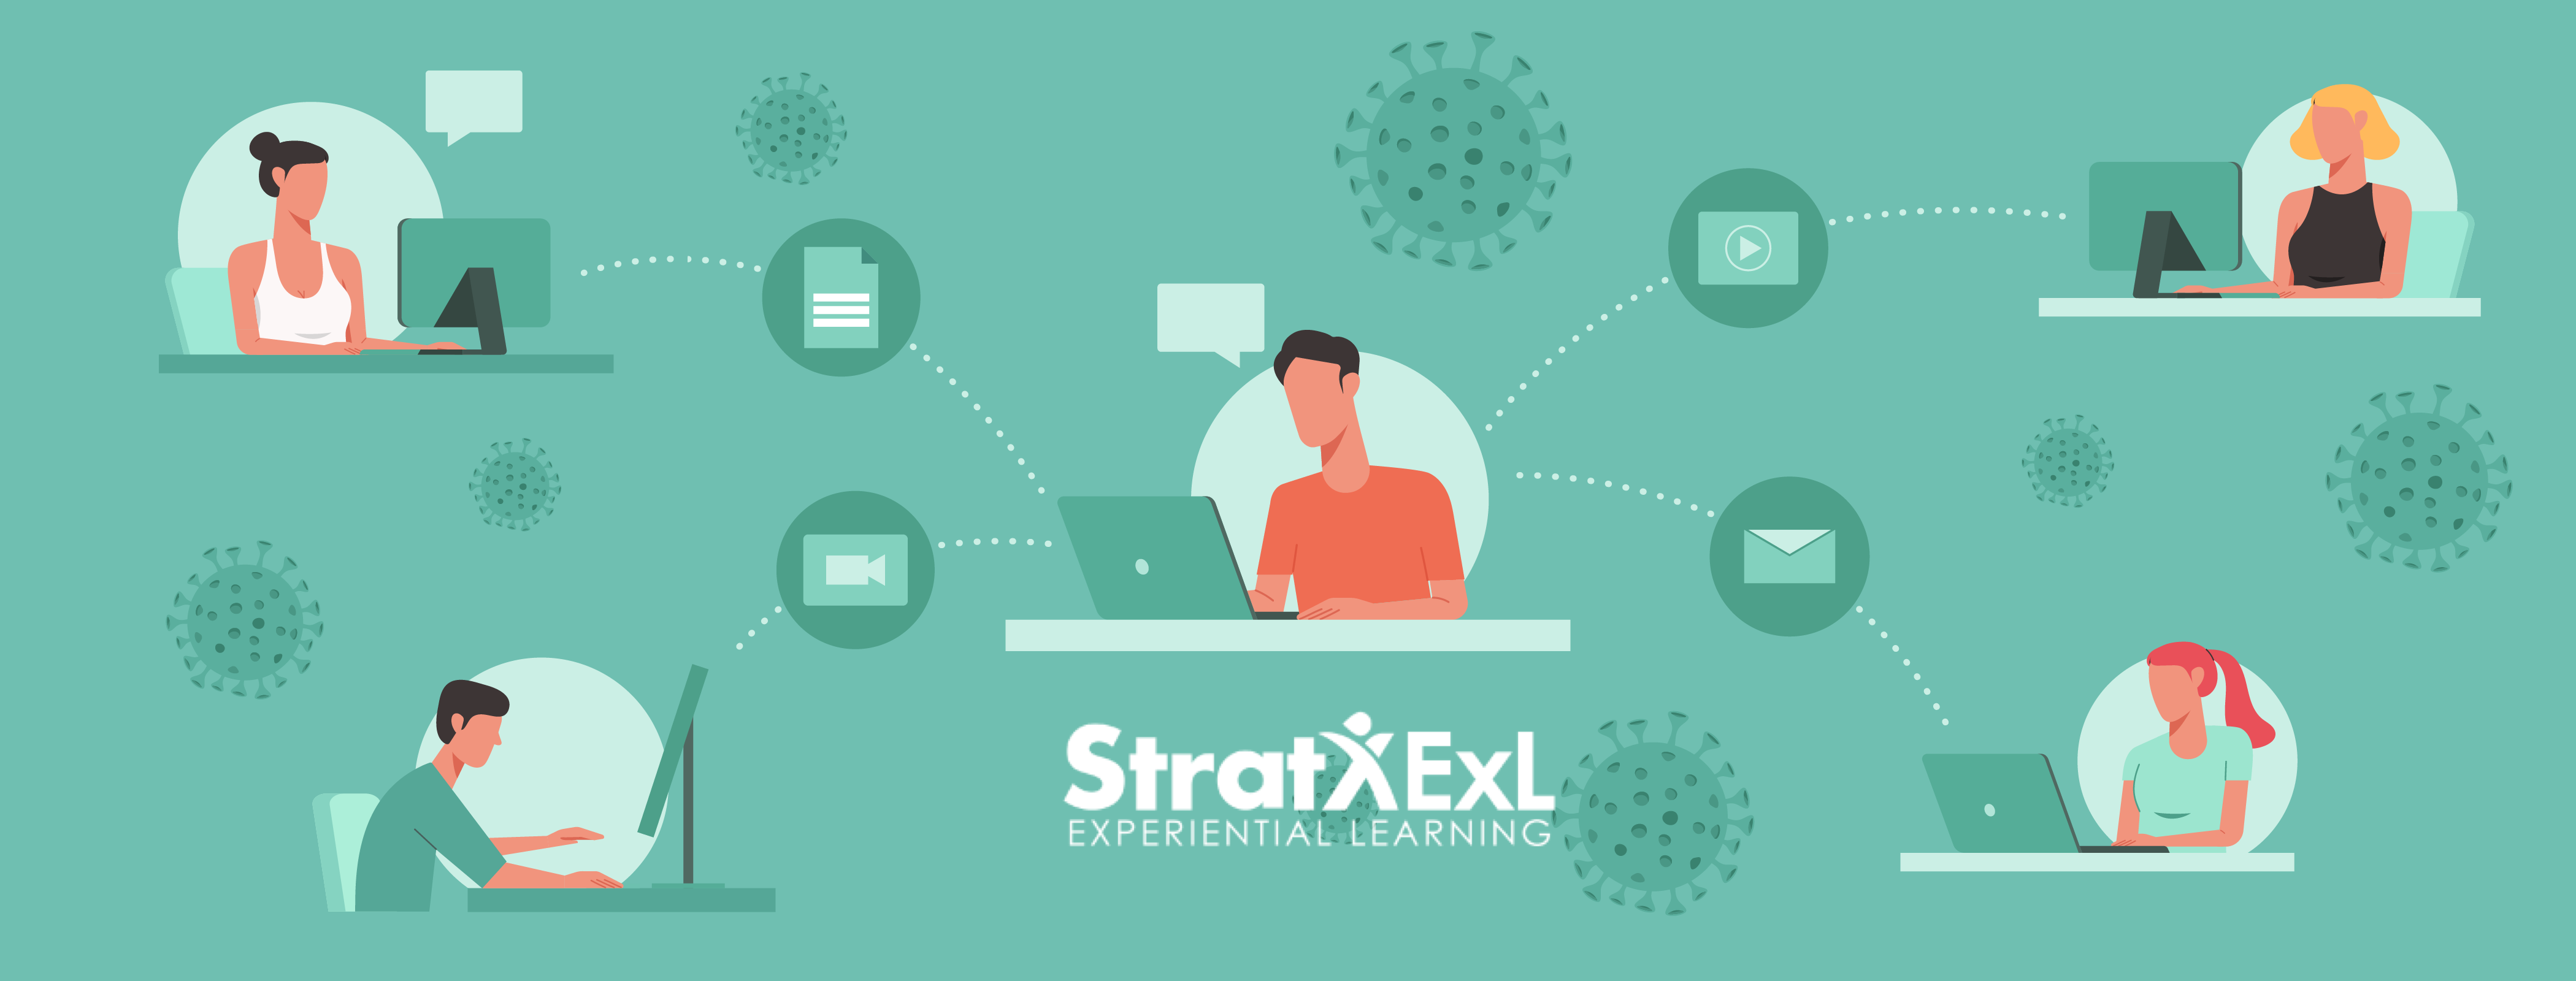 StratX Blog and Industry Insights